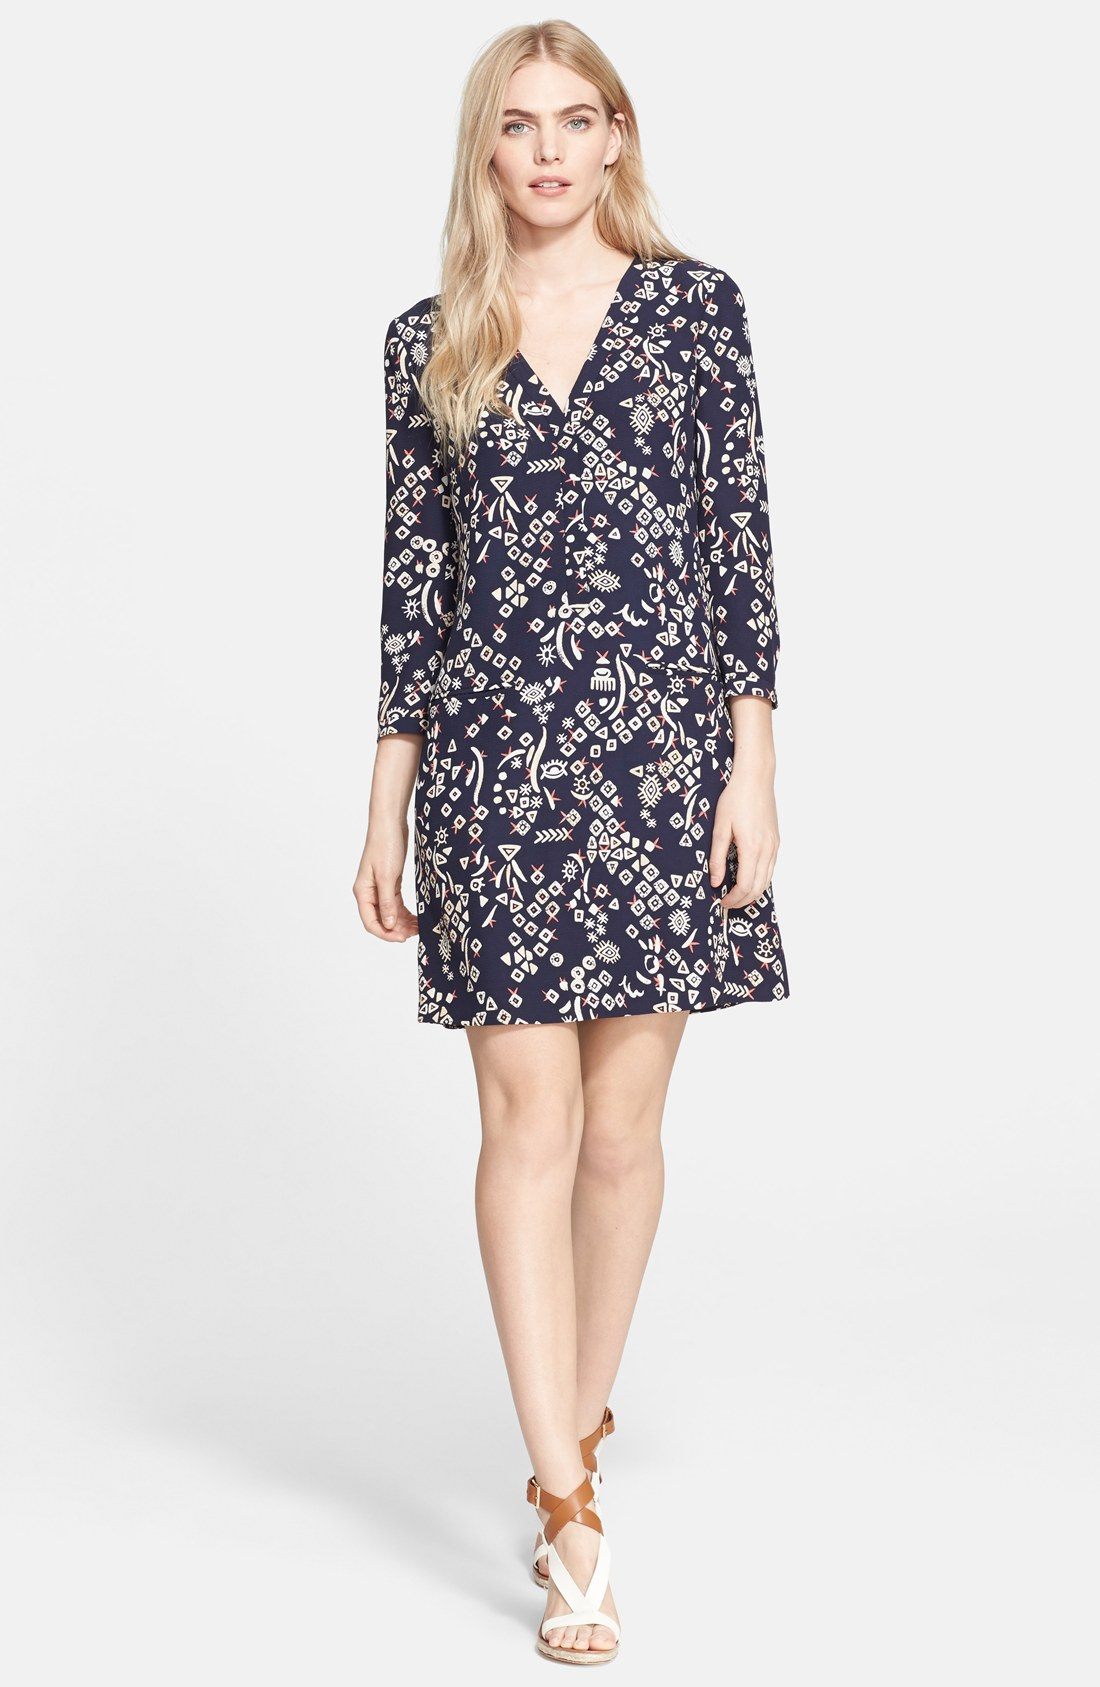 tory burch print hammered silk a line dress shop it to me all sales in one place shop it to me. Black Bedroom Furniture Sets. Home Design Ideas